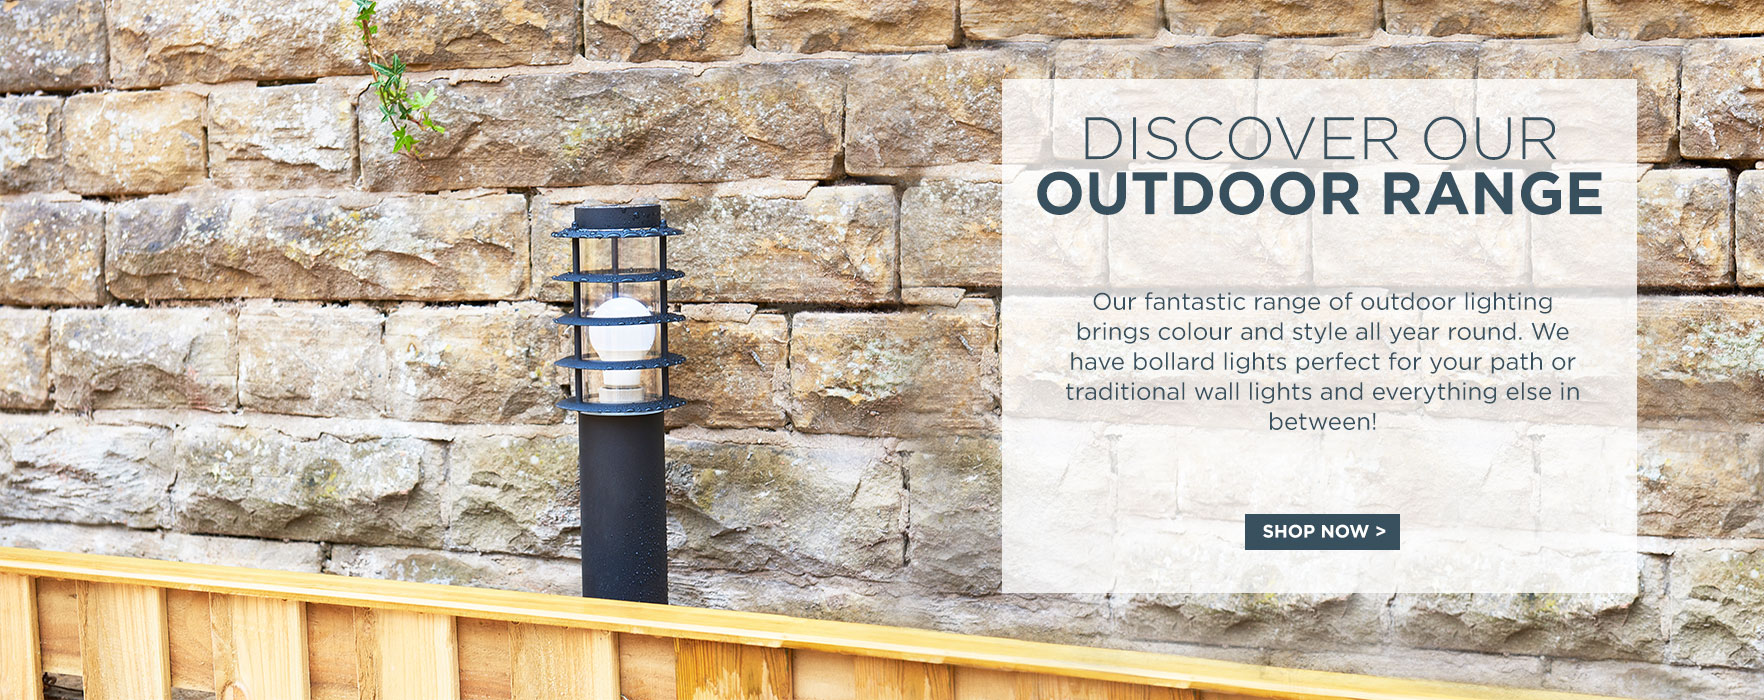 Discover Our Outdoor Range